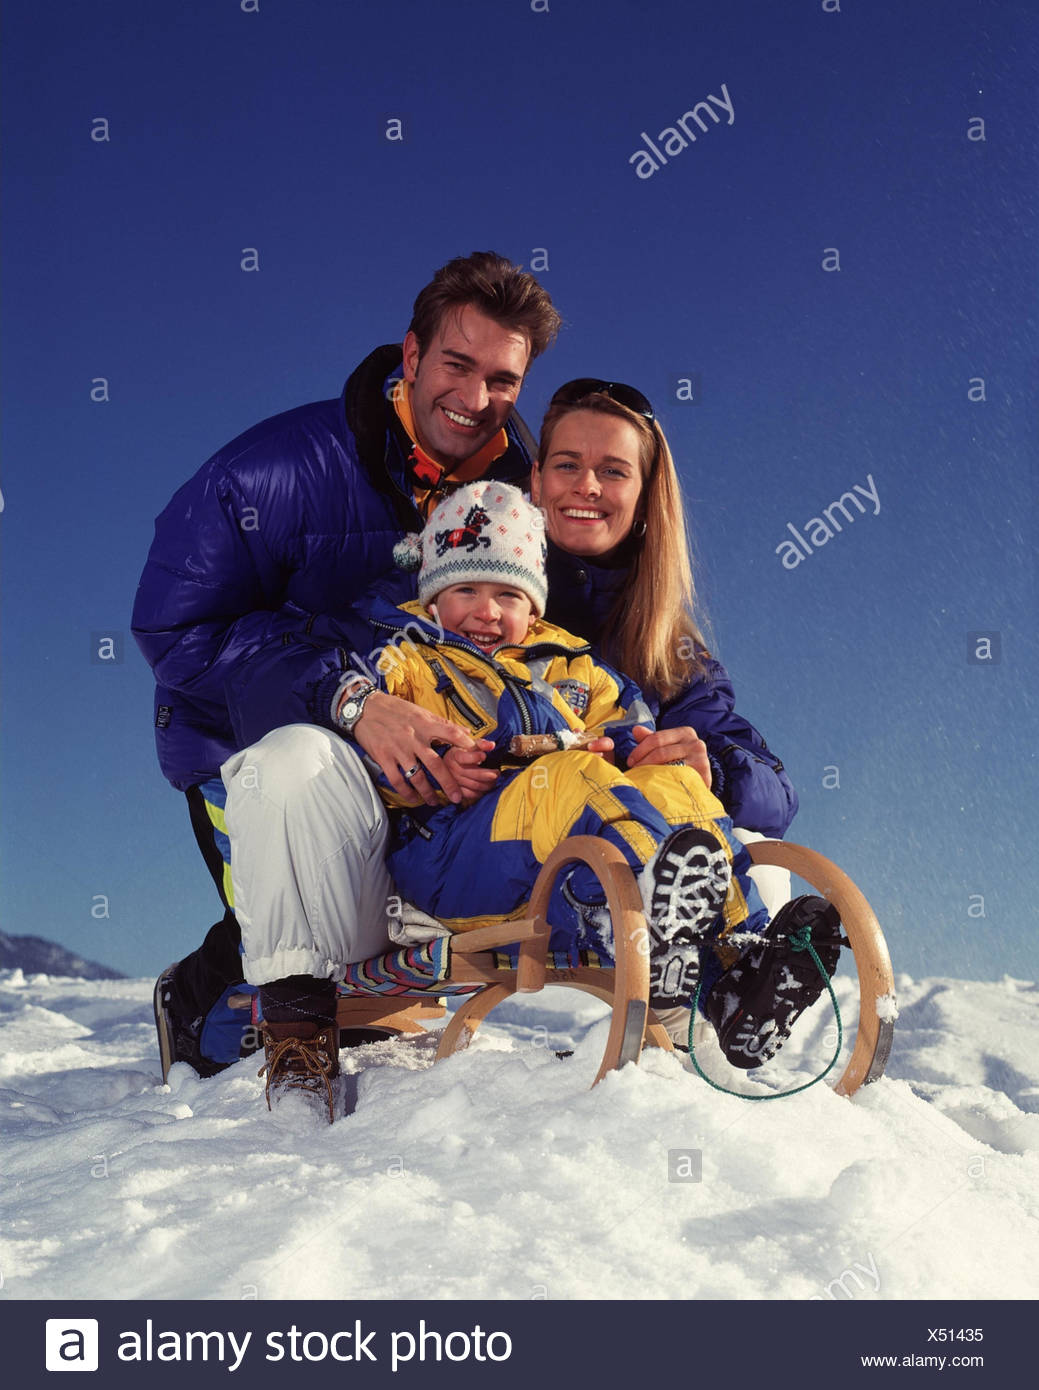 winters parents infant happy sleigh riding winter vacation